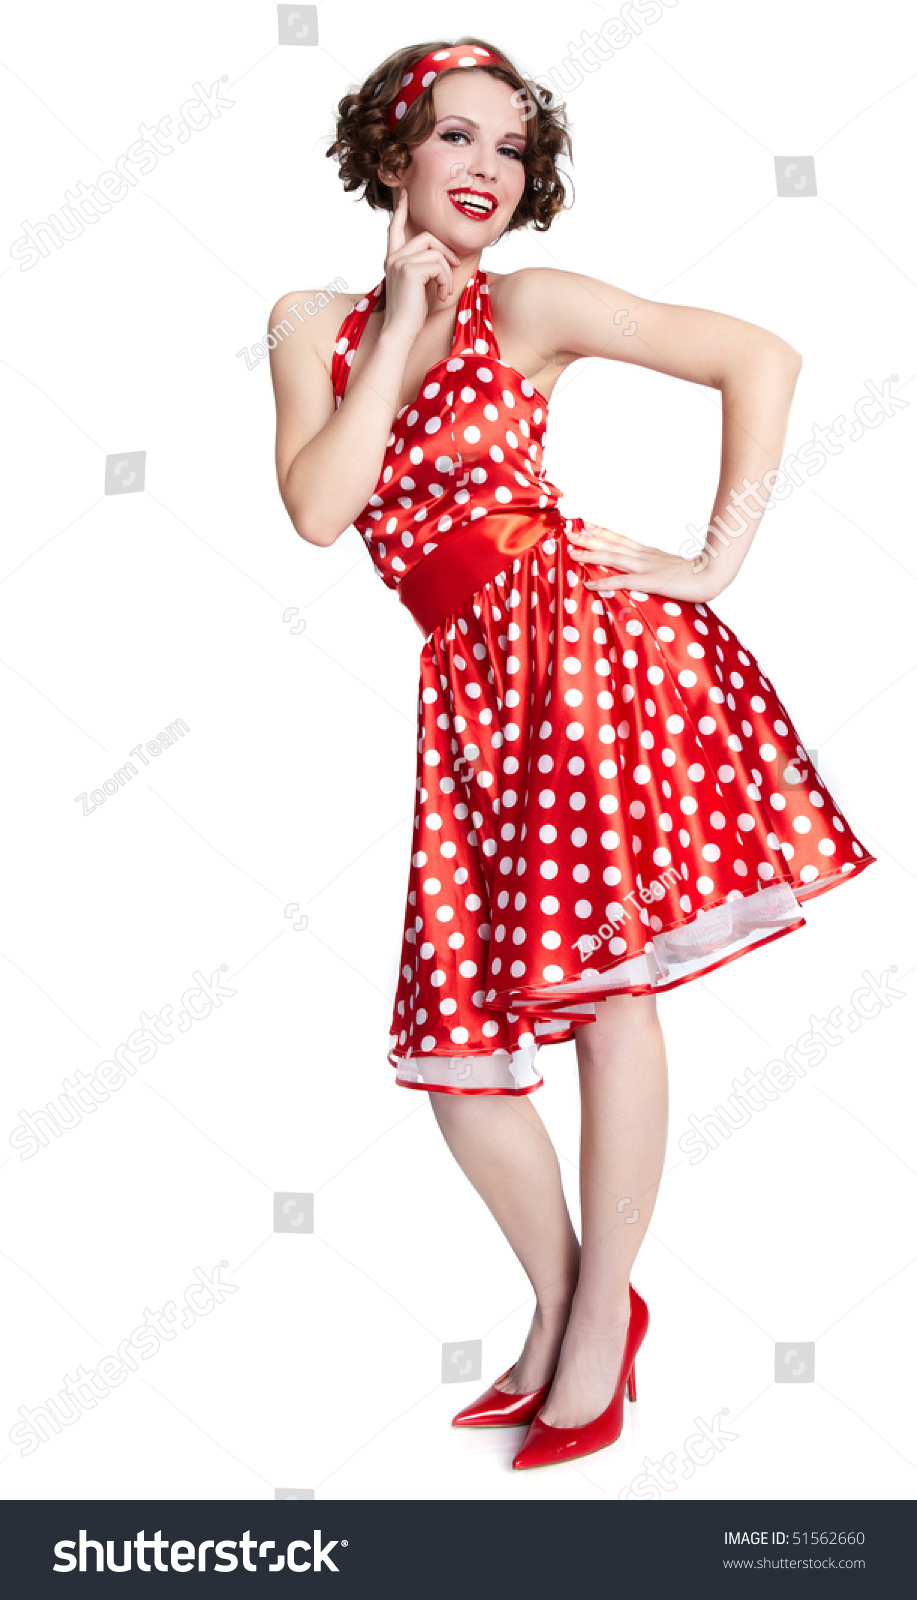 pinup girl american style stock photo 51562660 shutterstock. Black Bedroom Furniture Sets. Home Design Ideas